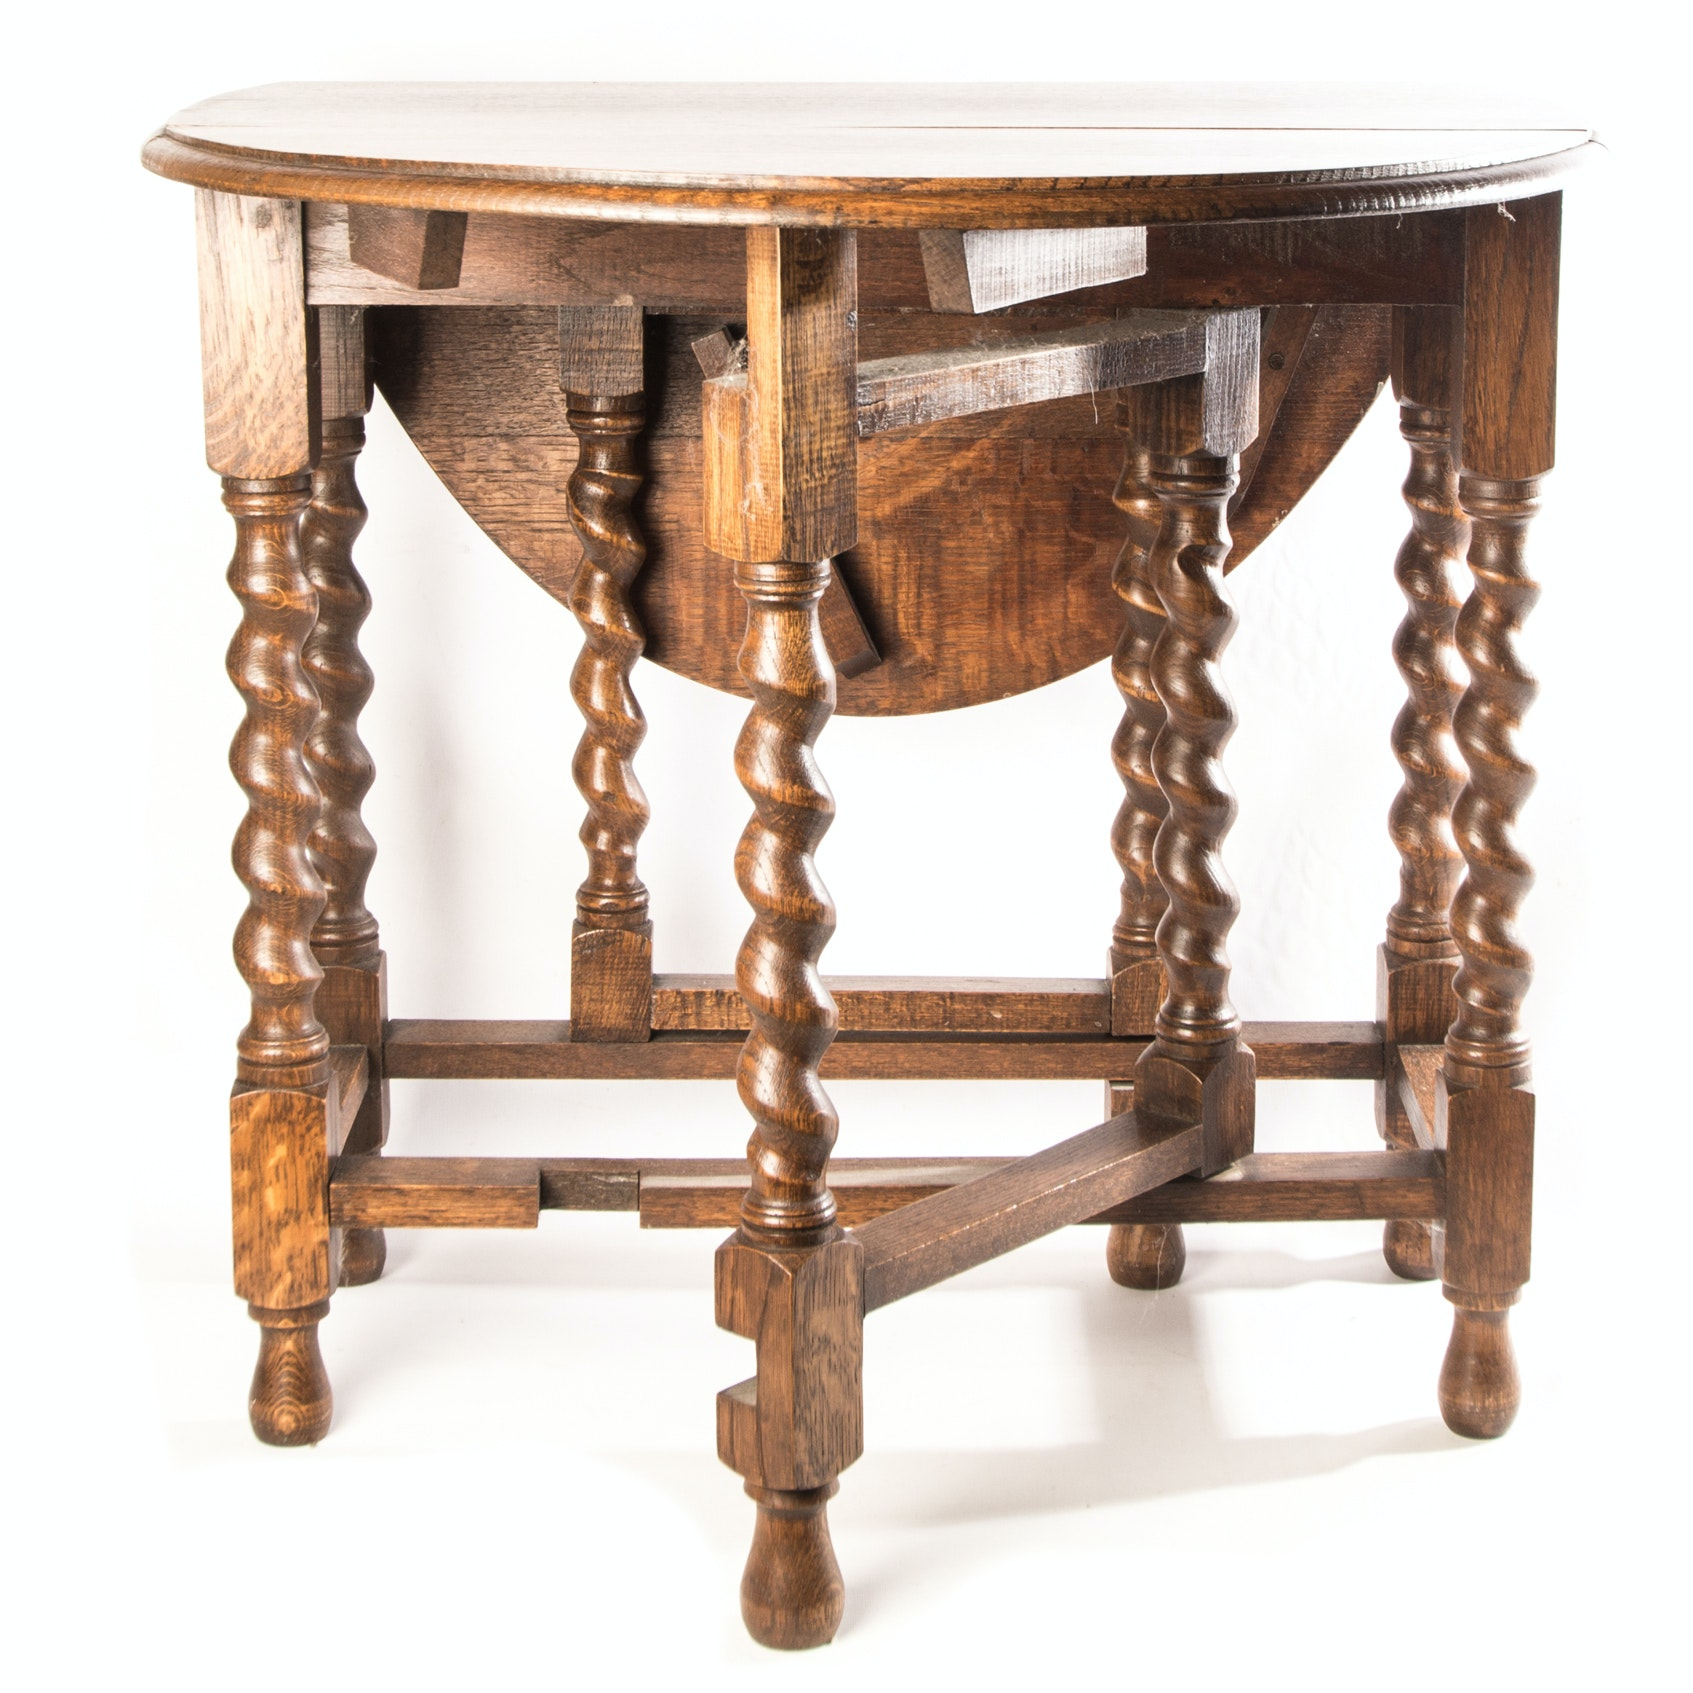 Vintage William And Mary Style Gateleg Table ...